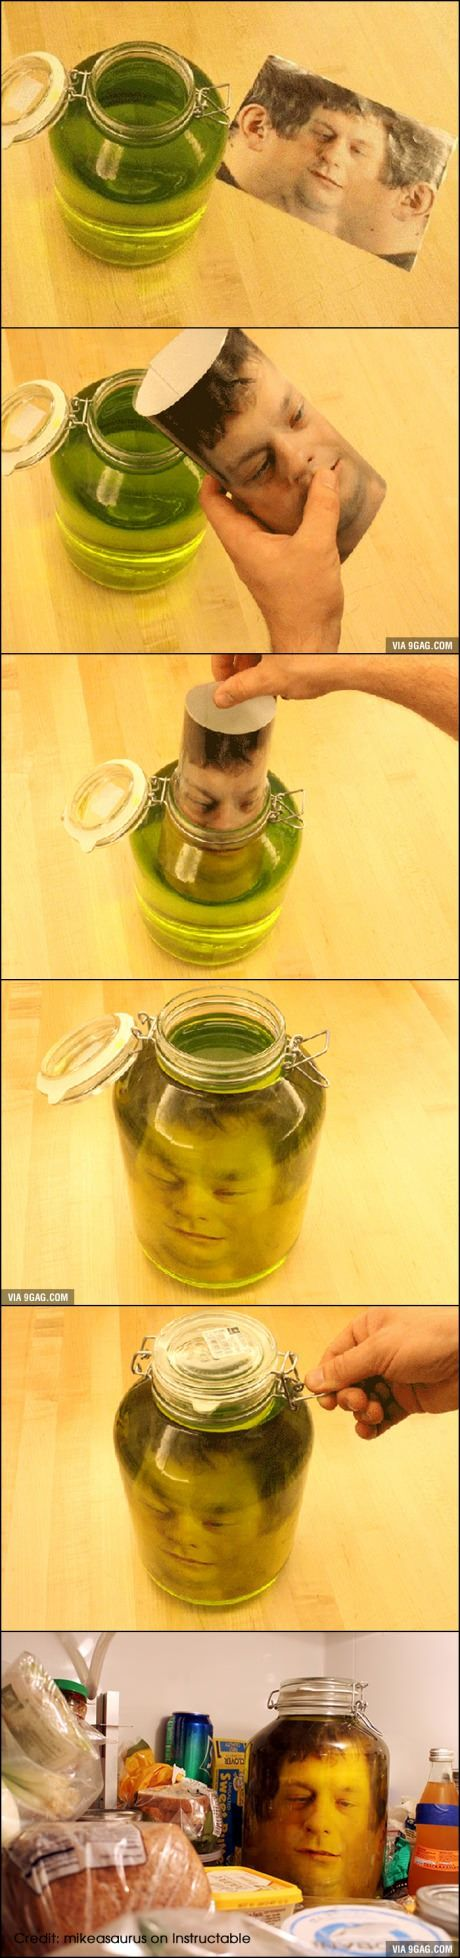 Head in a jar, scary! Great for Halloween. This has a great tutorial if you want to DIY and also an alternative to just download theirs. When you place the jar in the fridge and the kids go to get a drink. OMG its terror all over the house. This is a great Halloween prank. Come on get started Halloween will be upon us very soon.